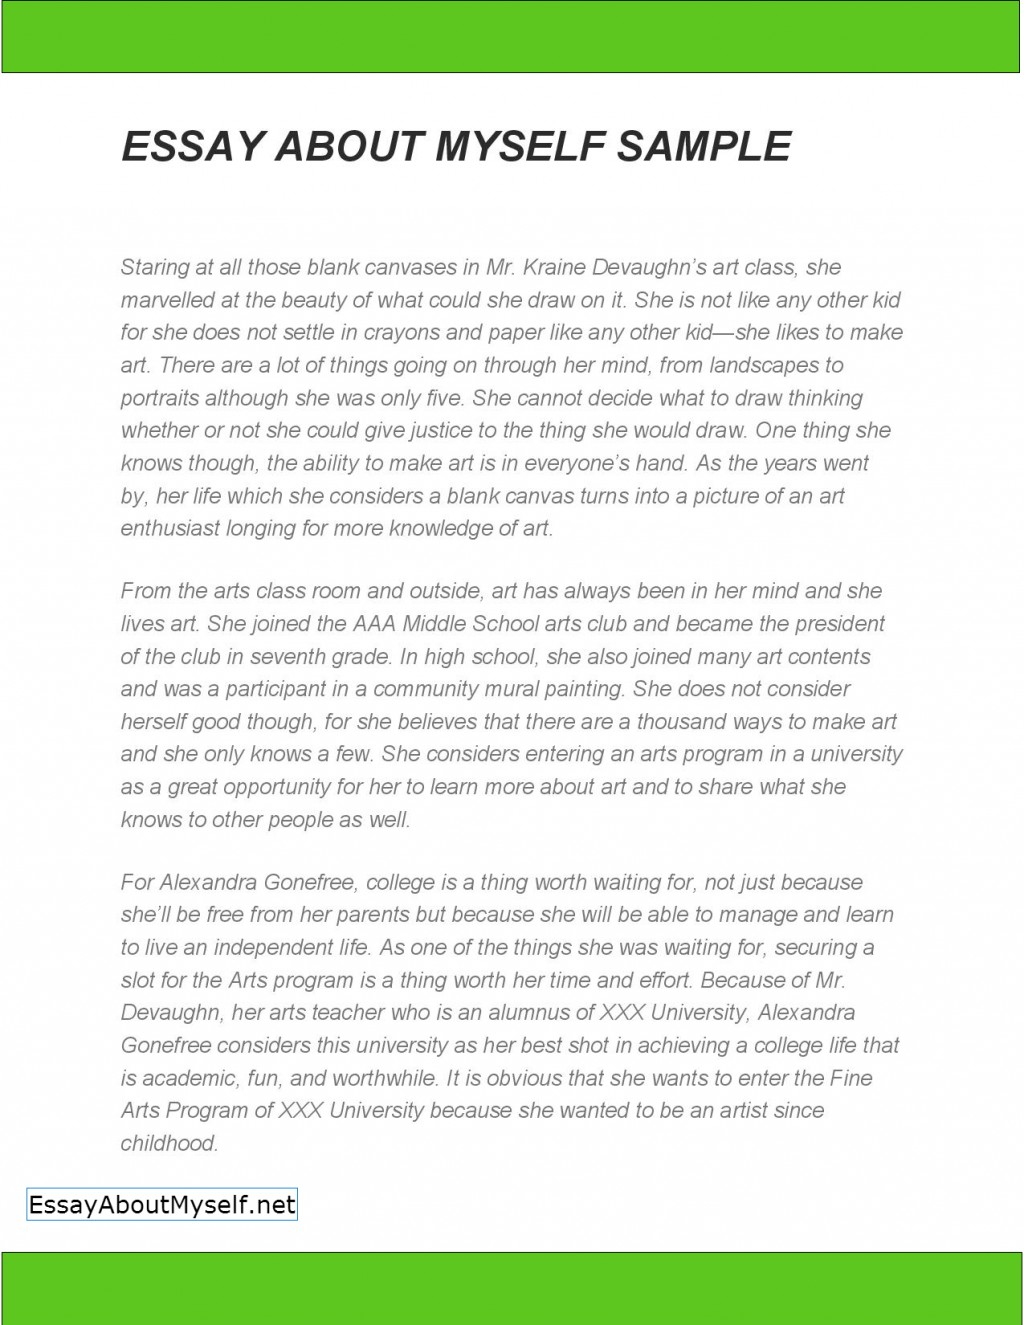 013 Essays Online To Read Essay About Myself Sample Remarkable Free Best Large